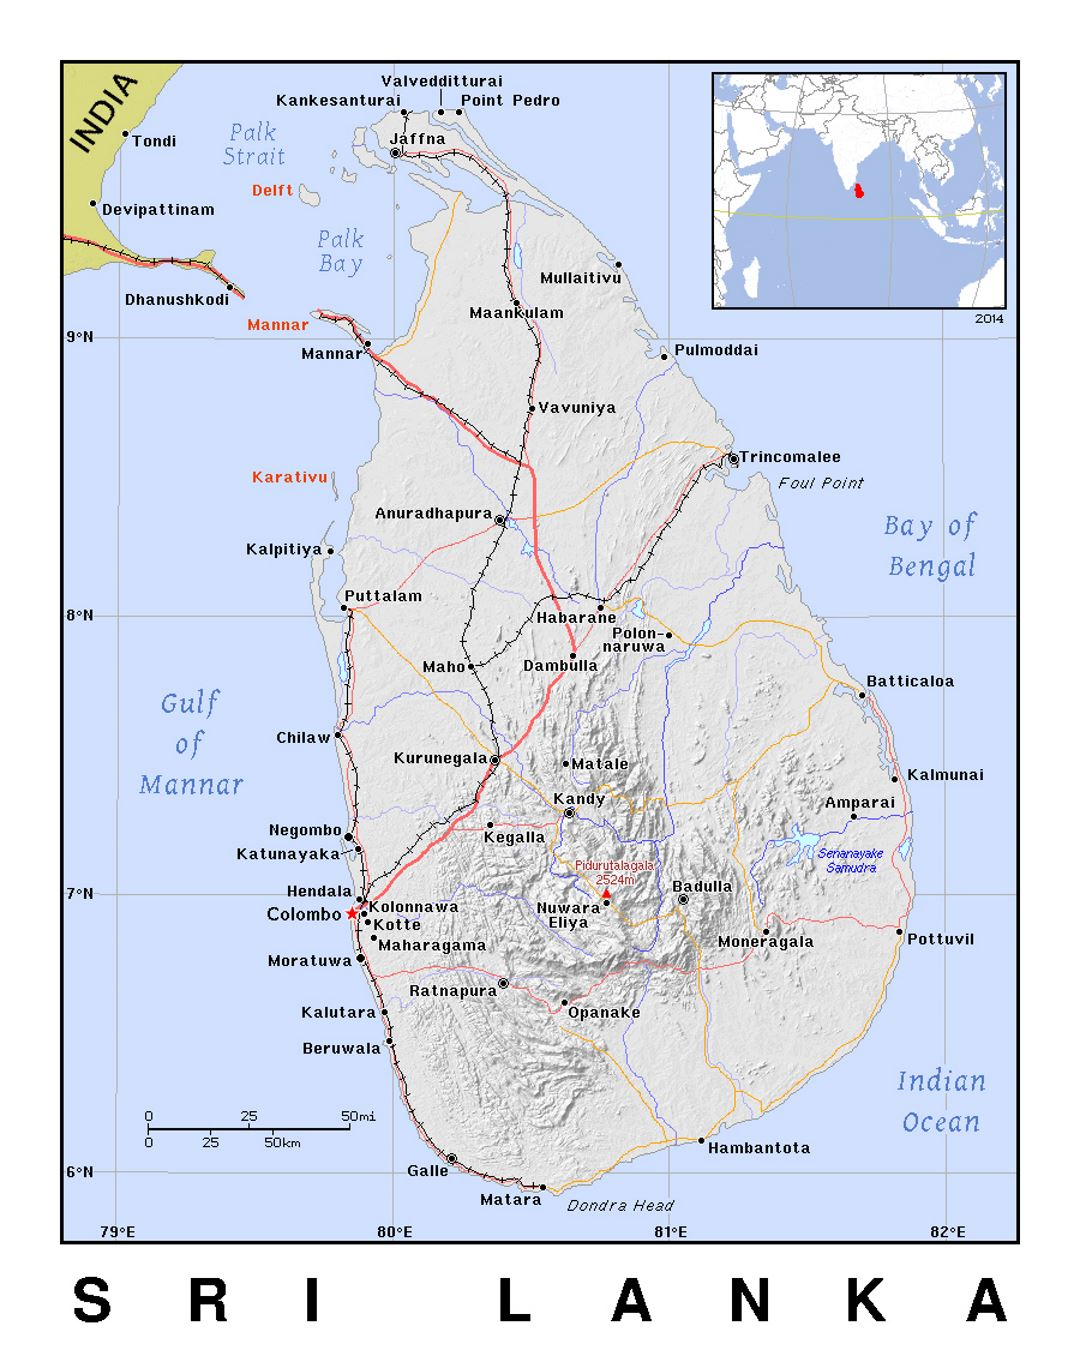 Sri Lanka Political Map.Detailed Political Map Of Sri Lanka With Relief Sri Lanka Asia